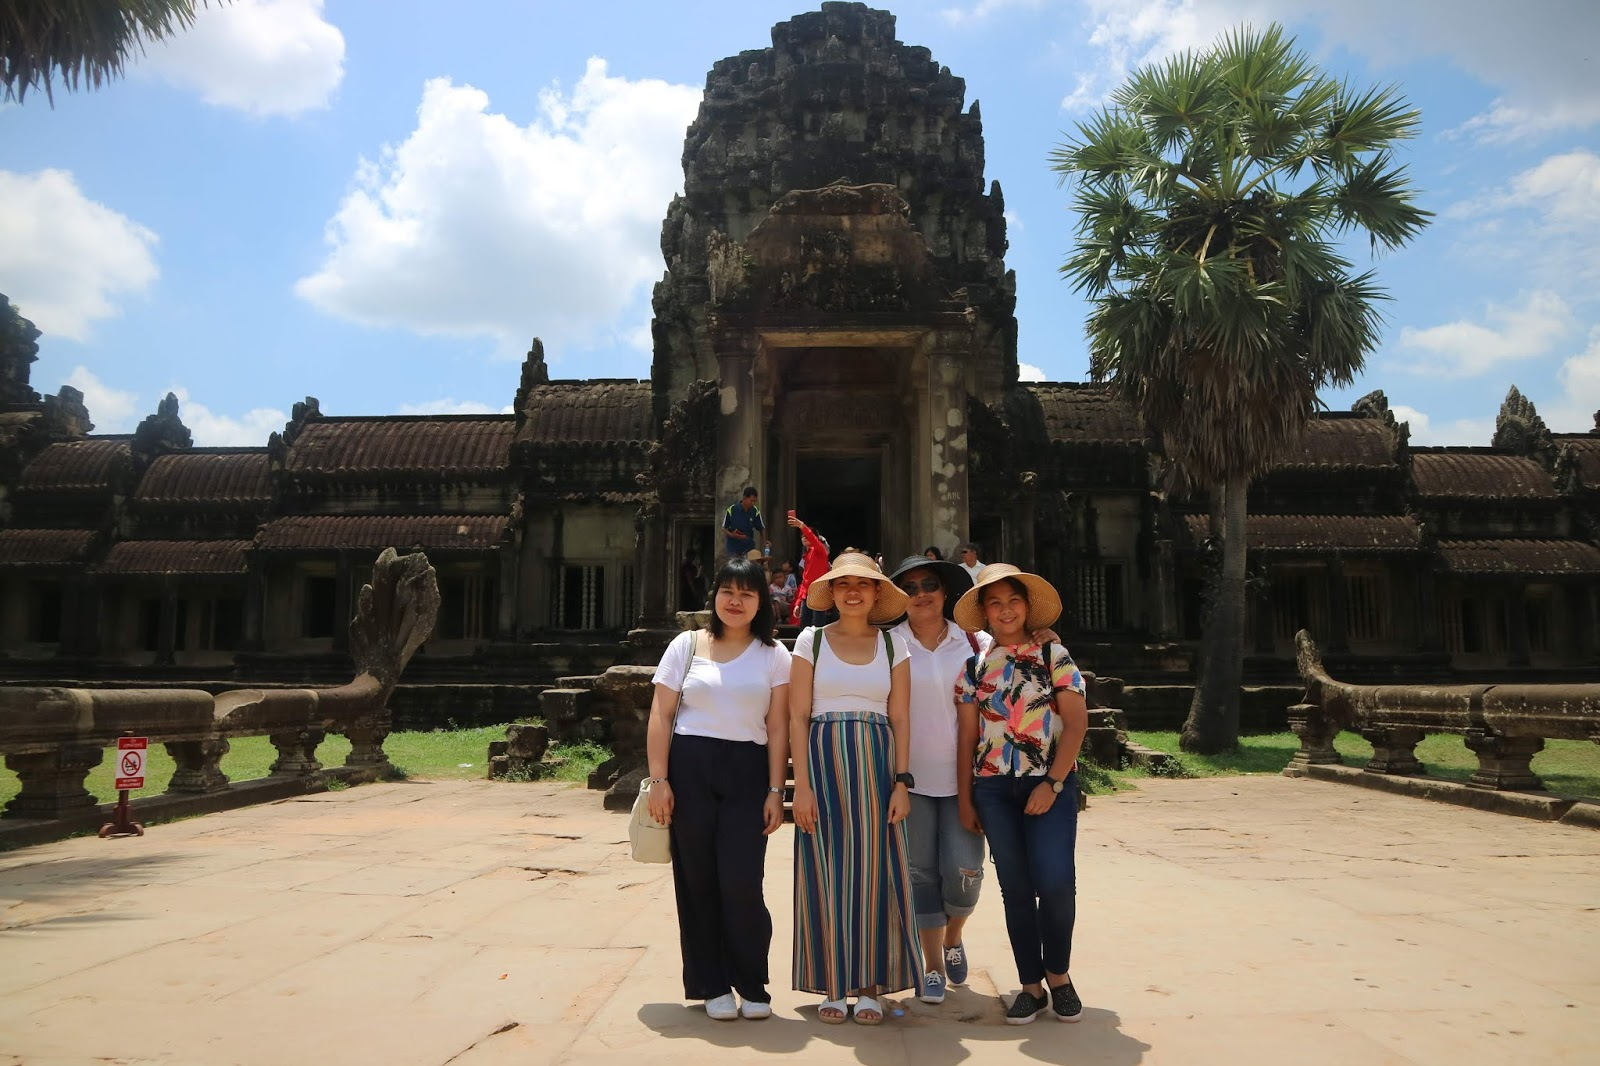 Group photo outside Angkor Wat